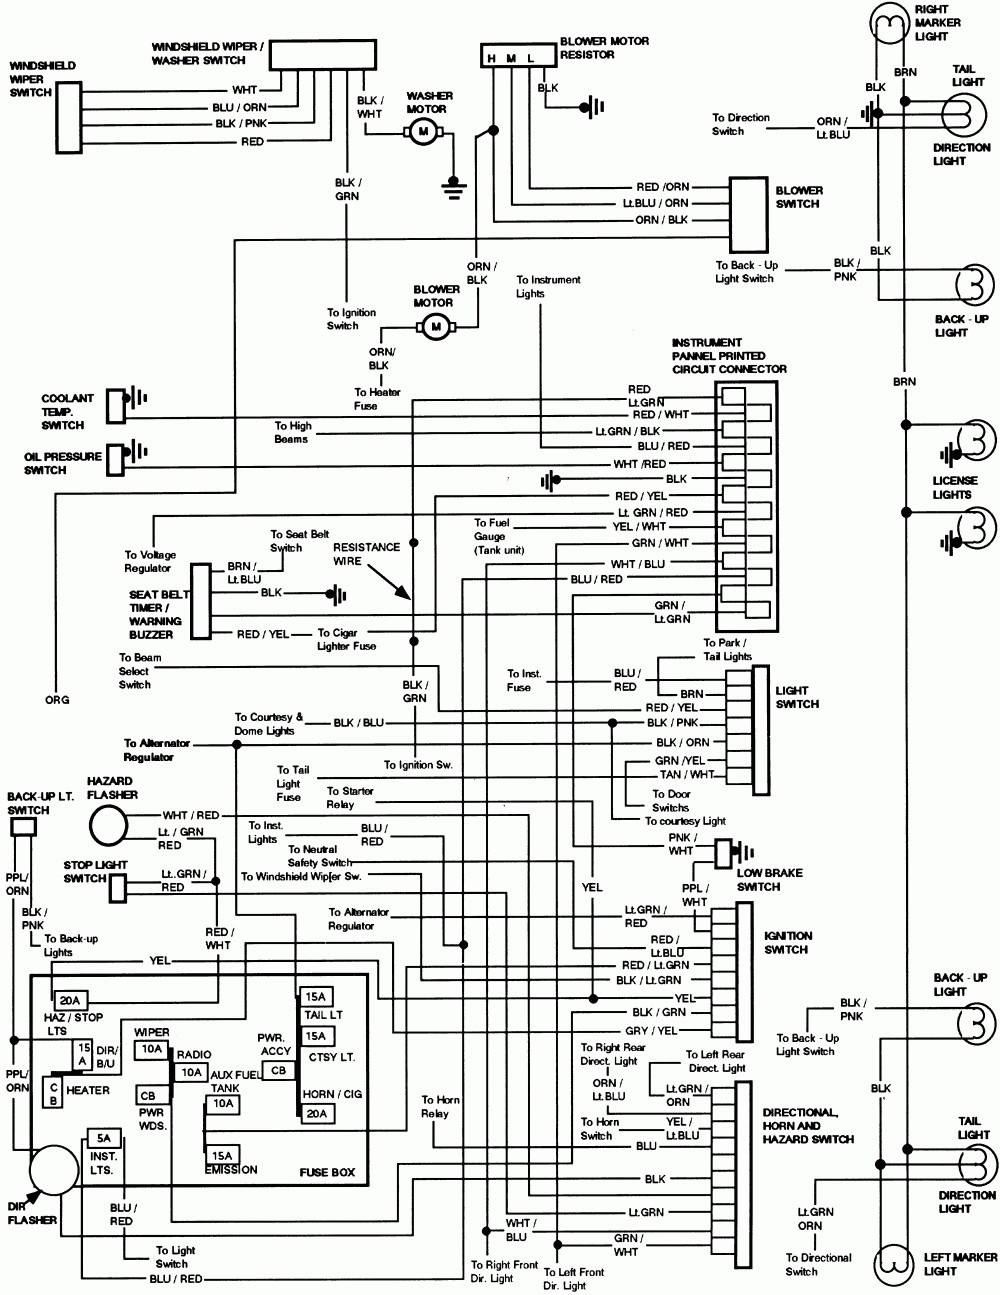 medium resolution of 1985 ford e150 wiring diagram wiring diagram blog 1984 e150 wiring diagram wiring diagrams konsult 1985